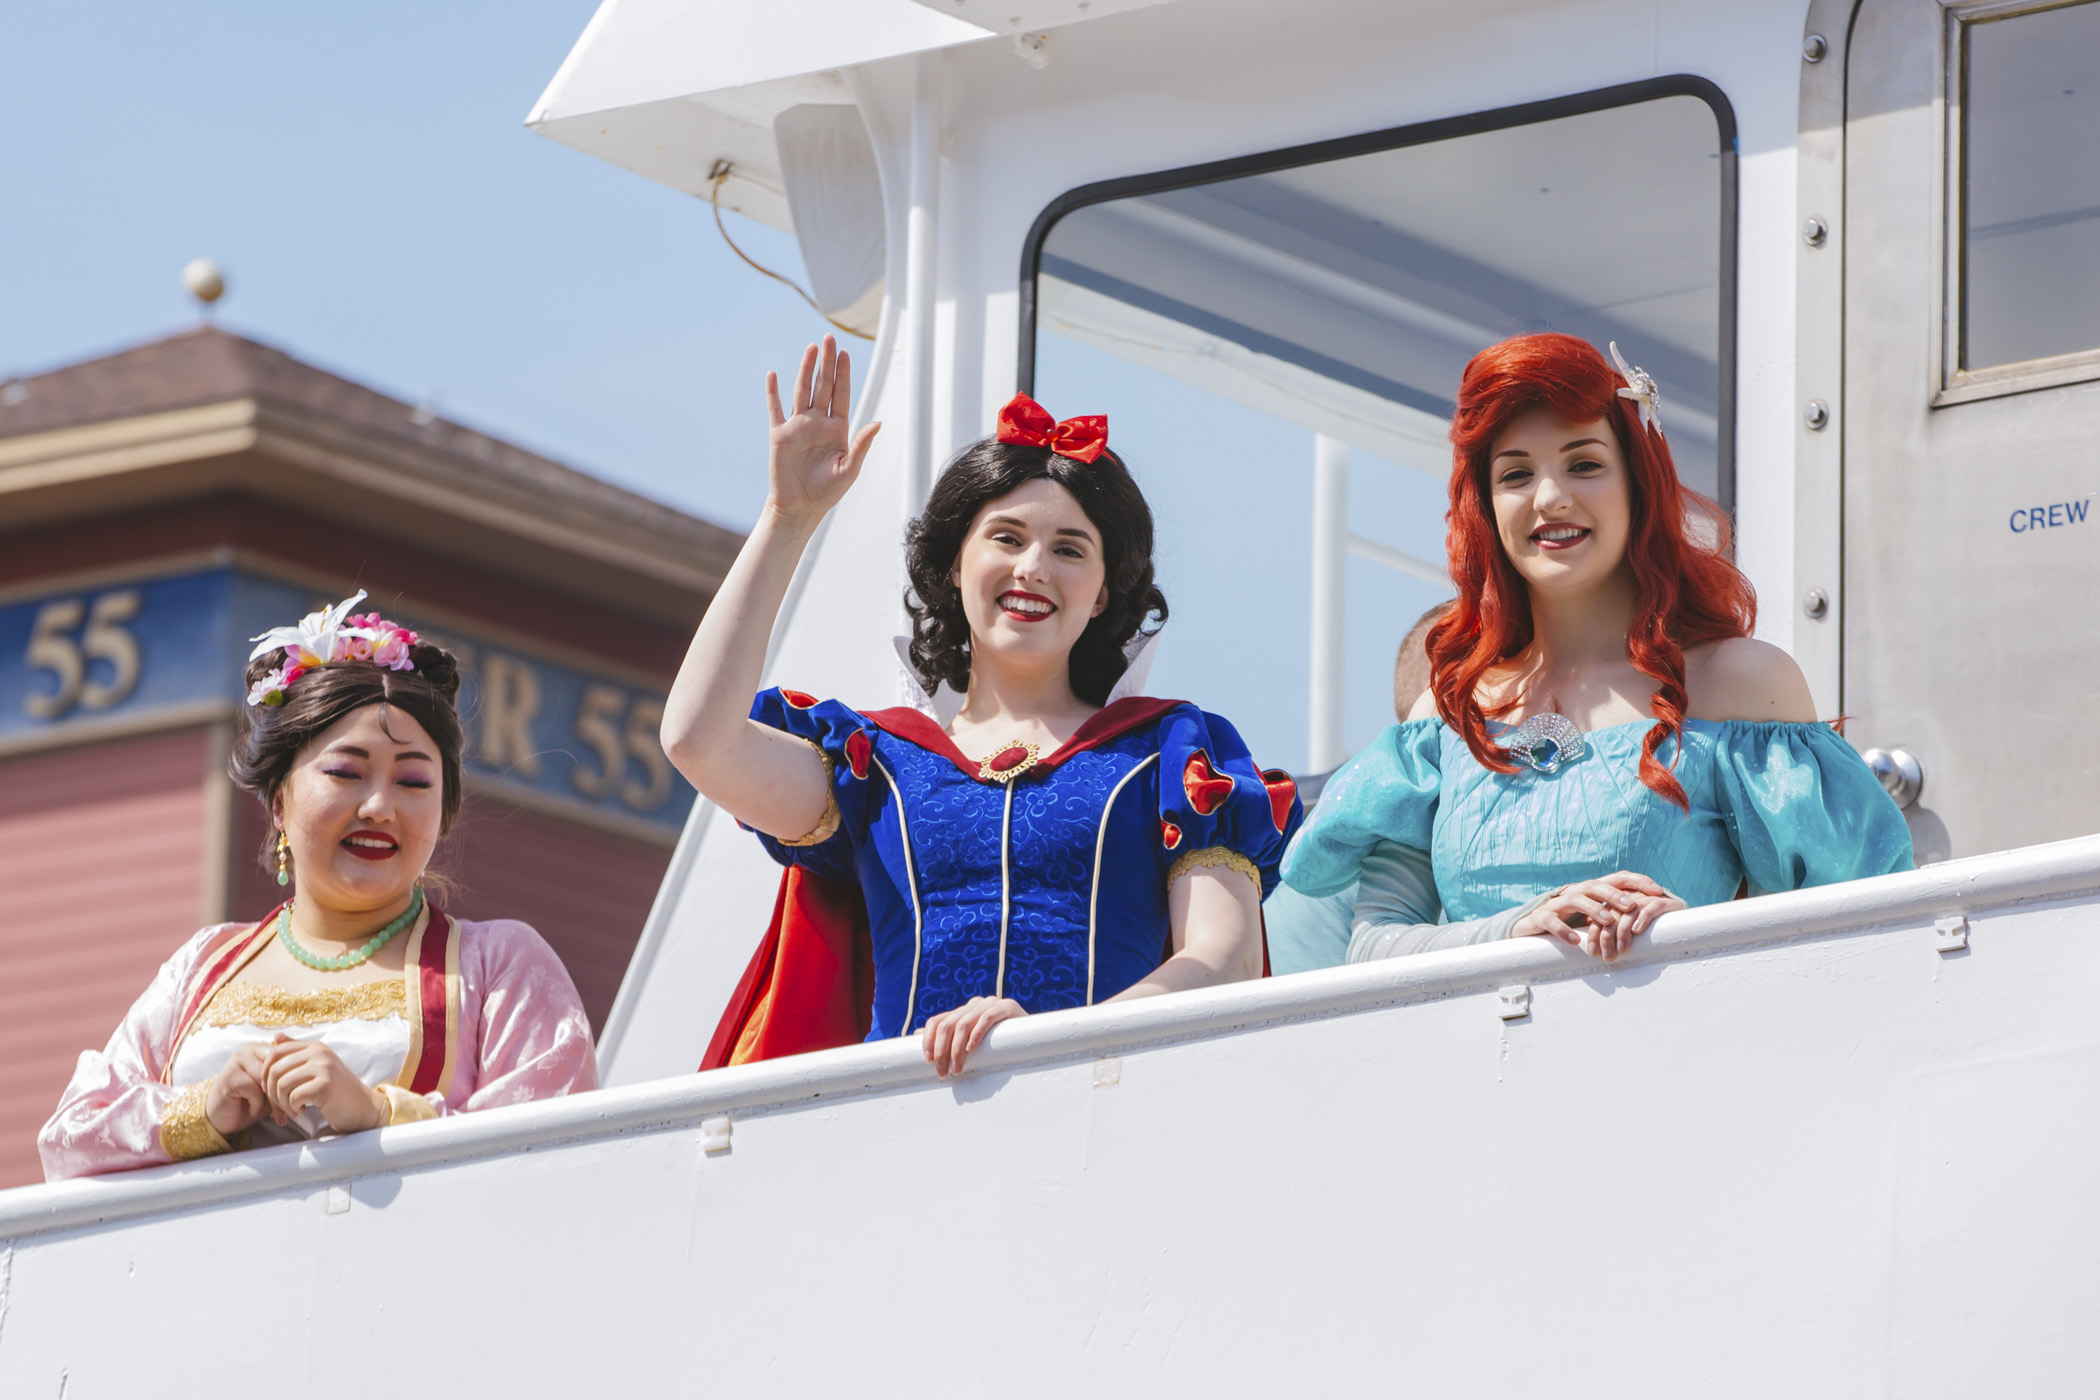 Two hours with over 20+ characters?! Of course we were going to be there! Seattle's Princesses, The Painted Palaces and Argosy Cruises teamed up for a truly unique event on May 4, 2019. On the three different sessions available to the public, 200 guests got to mingle with princesses, enjoy snacks, drinks, entertainment and dancing. (Image: Sunita Martini / Seattle Refined)